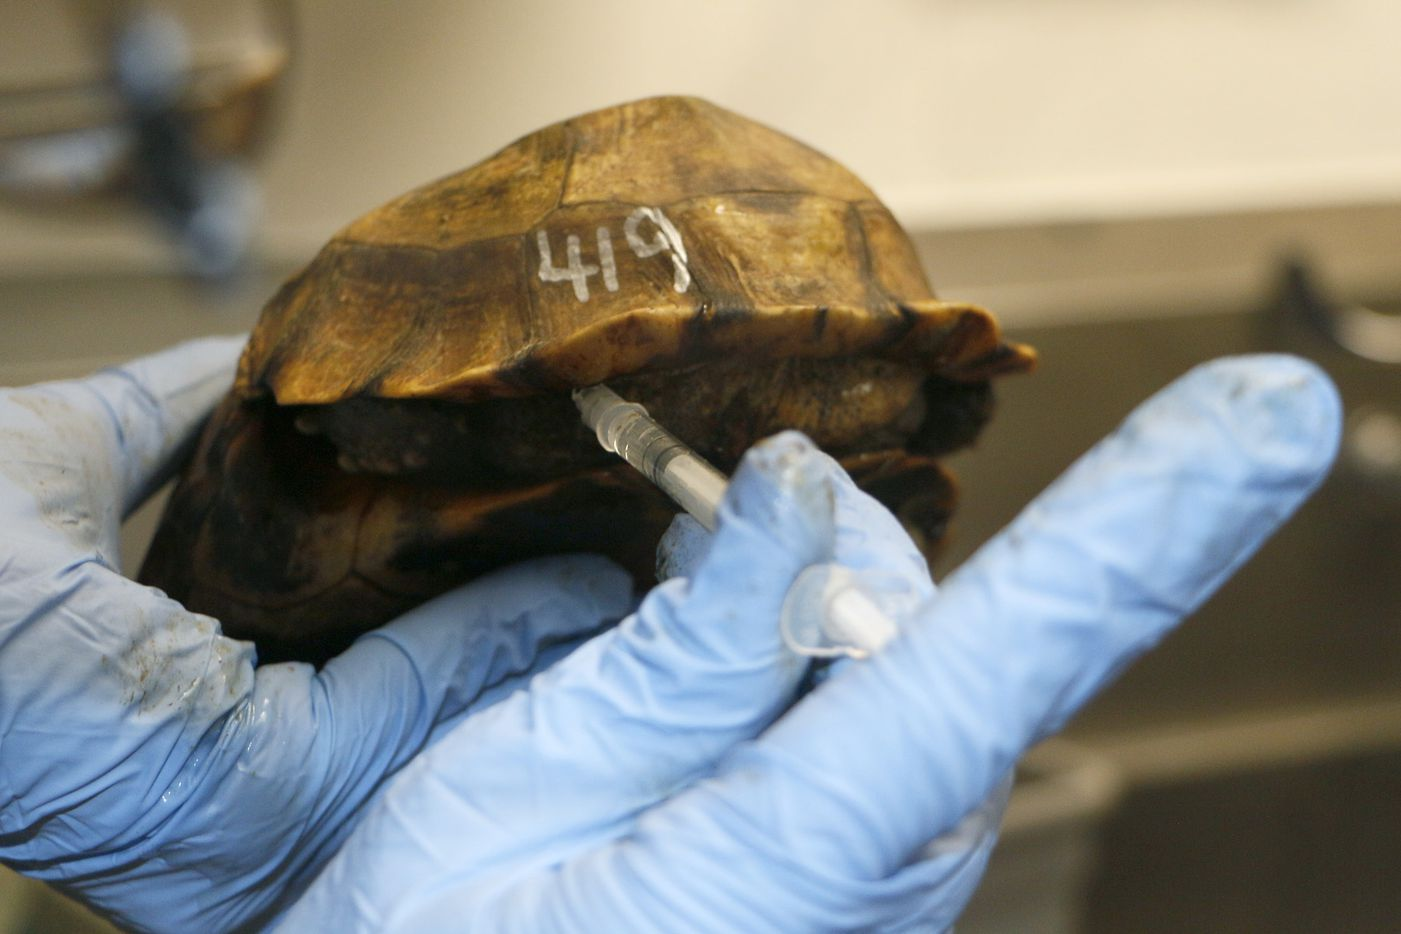 One of the Home's hinge-back tortoises that was sent to the zoo after being confiscated in Miami receives some medicine. Some of the tortoises had internal parasites and other health issues when they arrived.